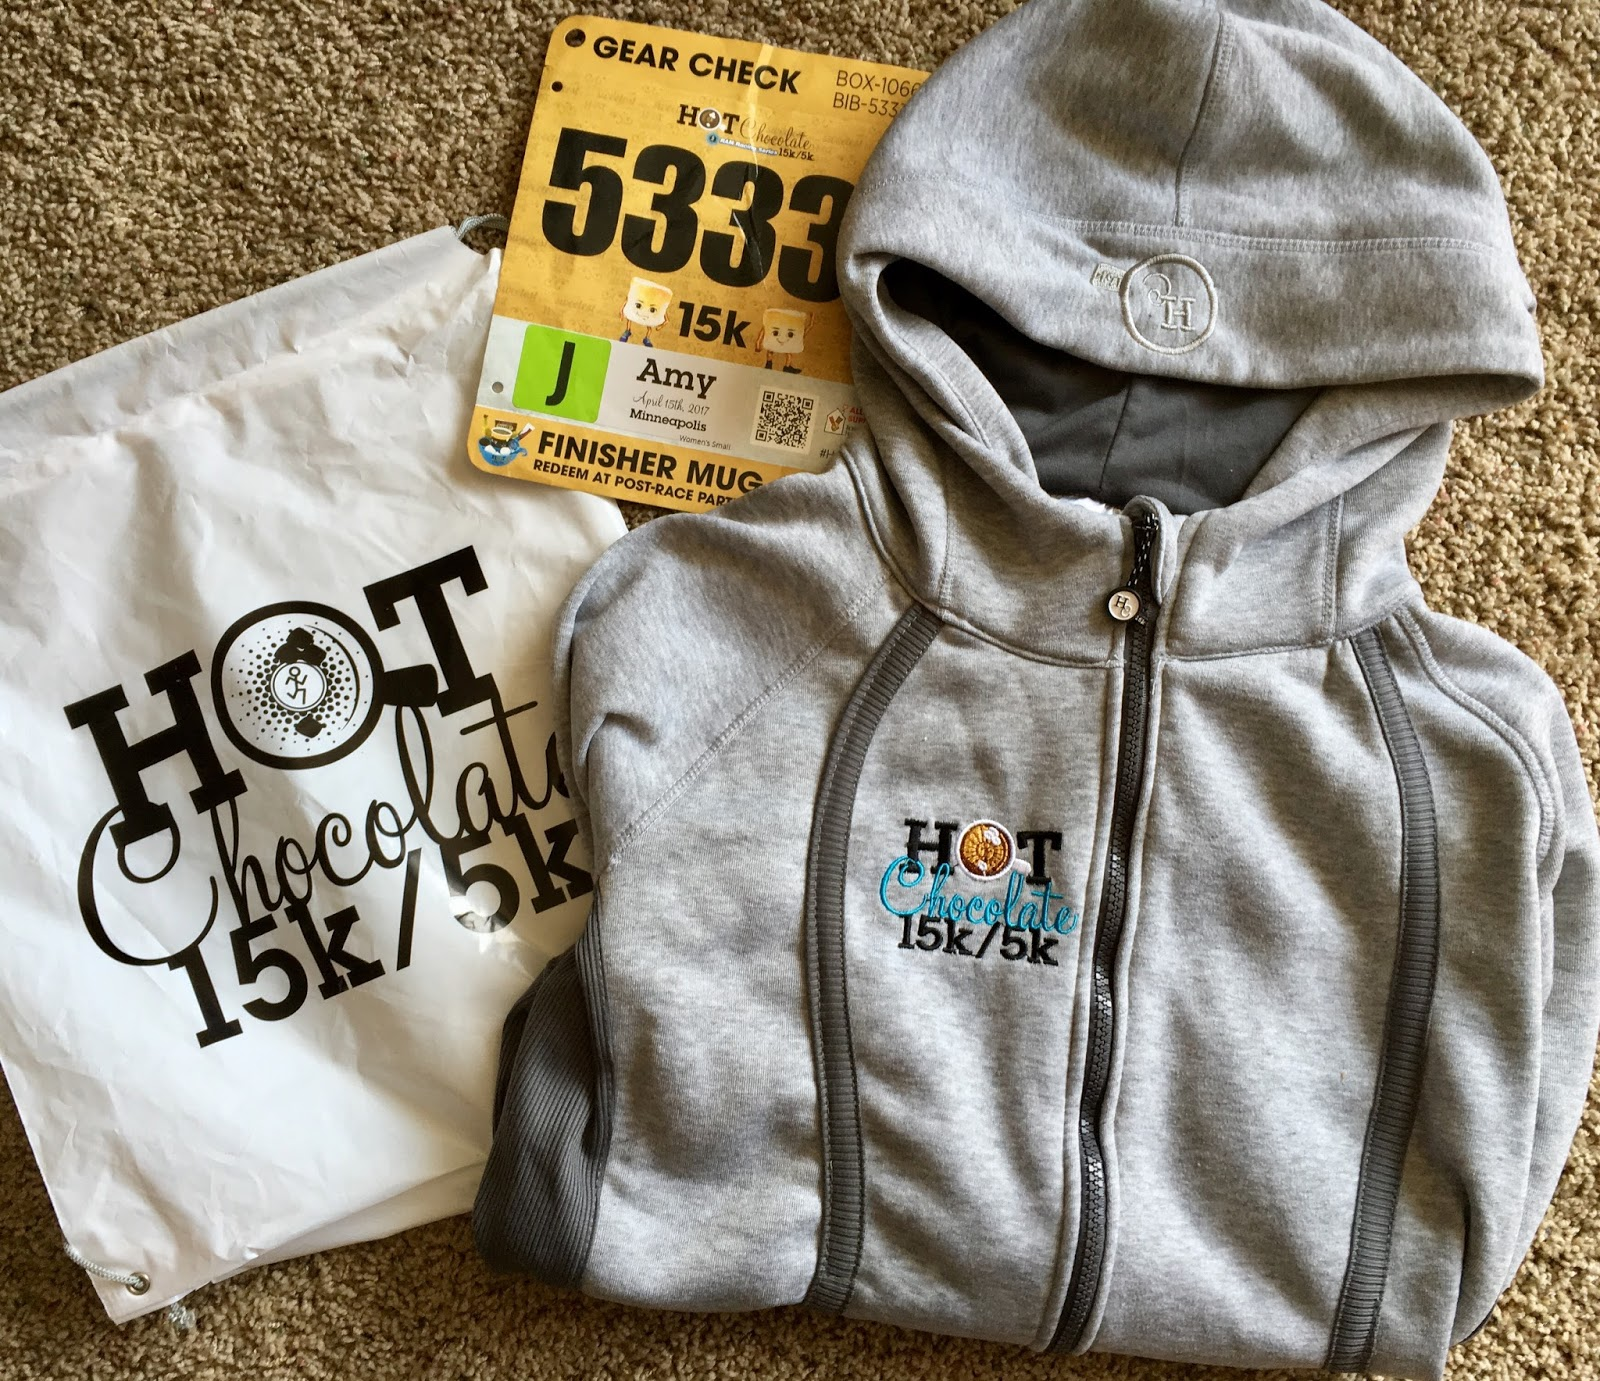 Life to the Full: Hot Chocolate 15k Taper & Race Goals